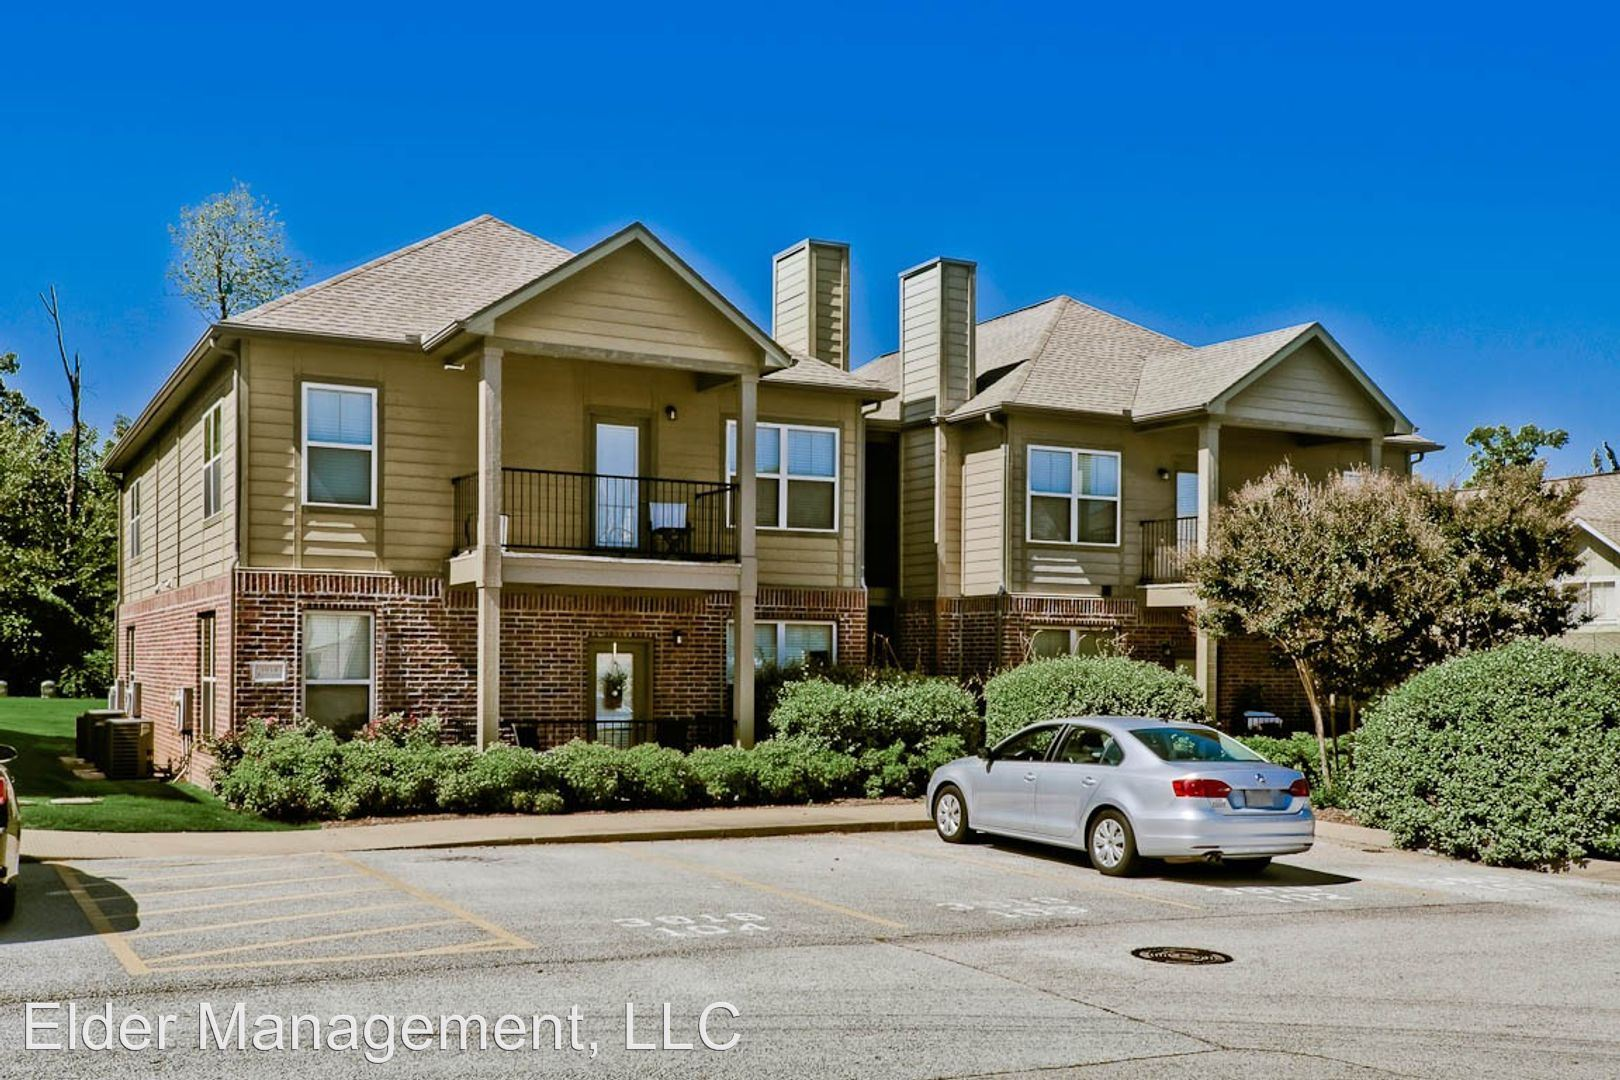 Apartment for Rent in Springdale